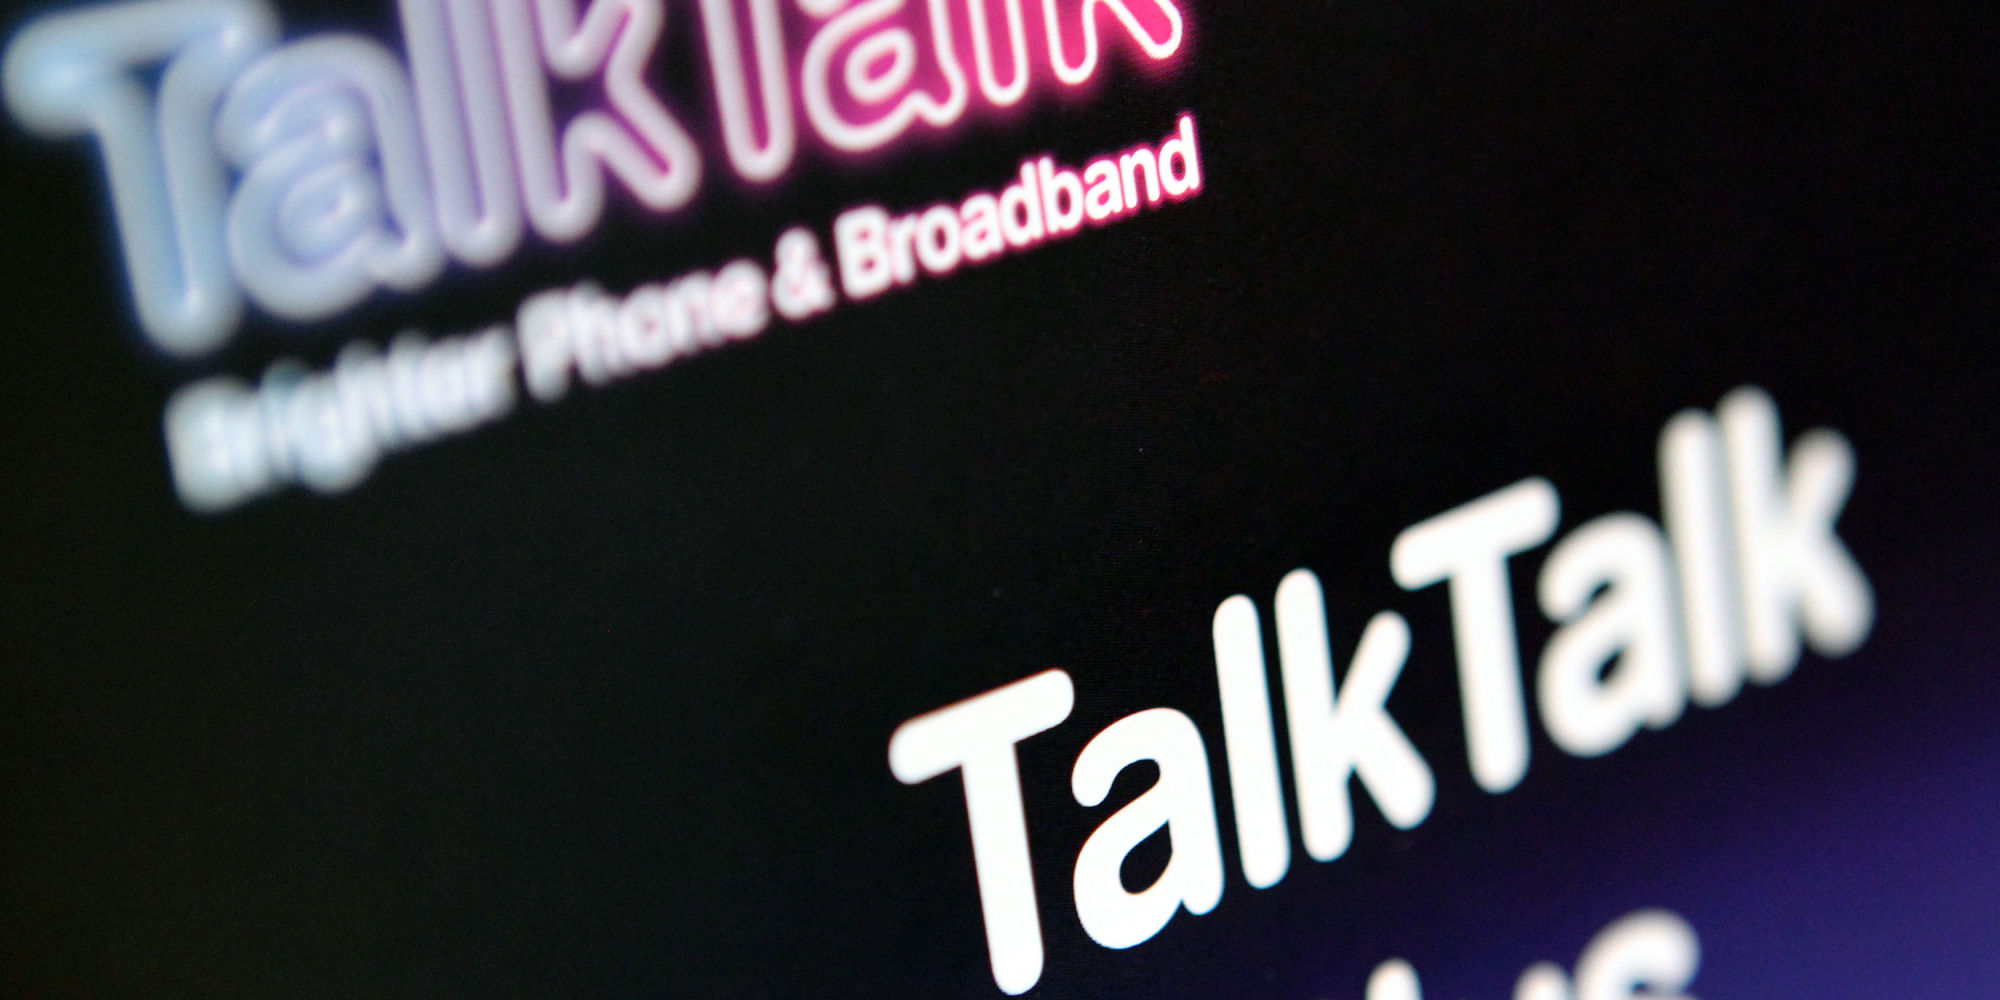 TalkTalk for business network growth